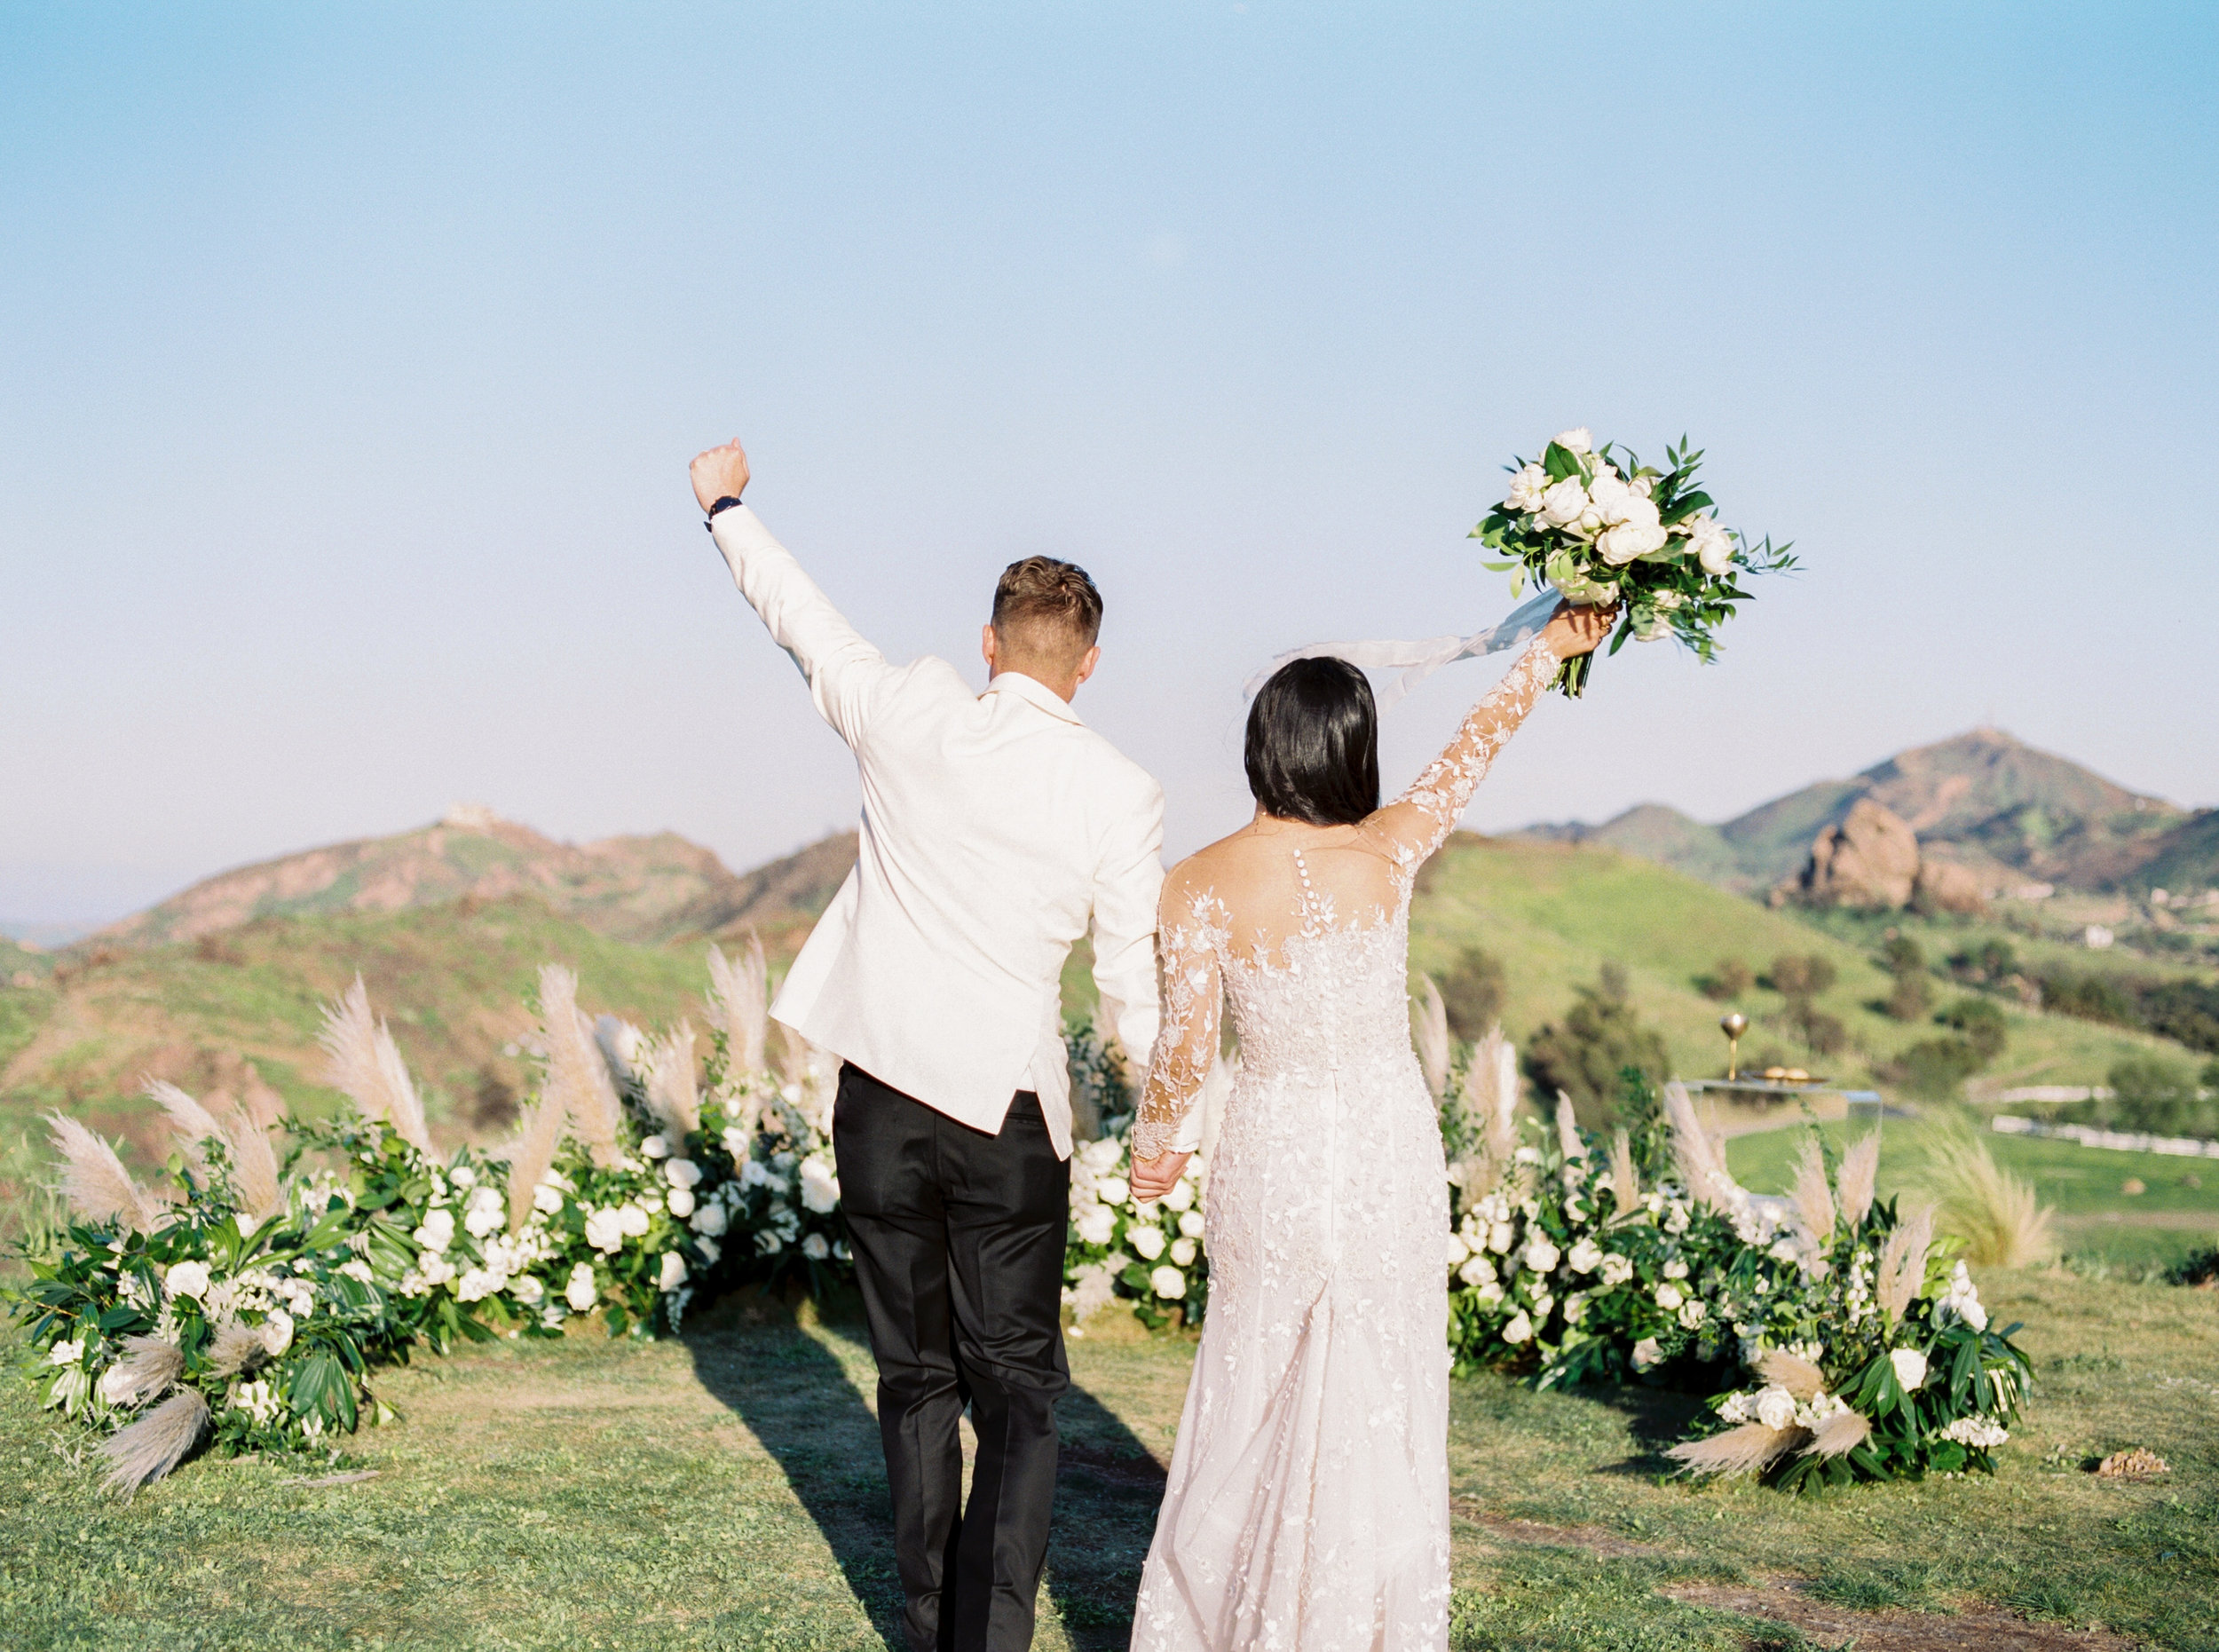 Levi & Amelia's Wedding - Natalie Schutt Photography - Film-14.jpg